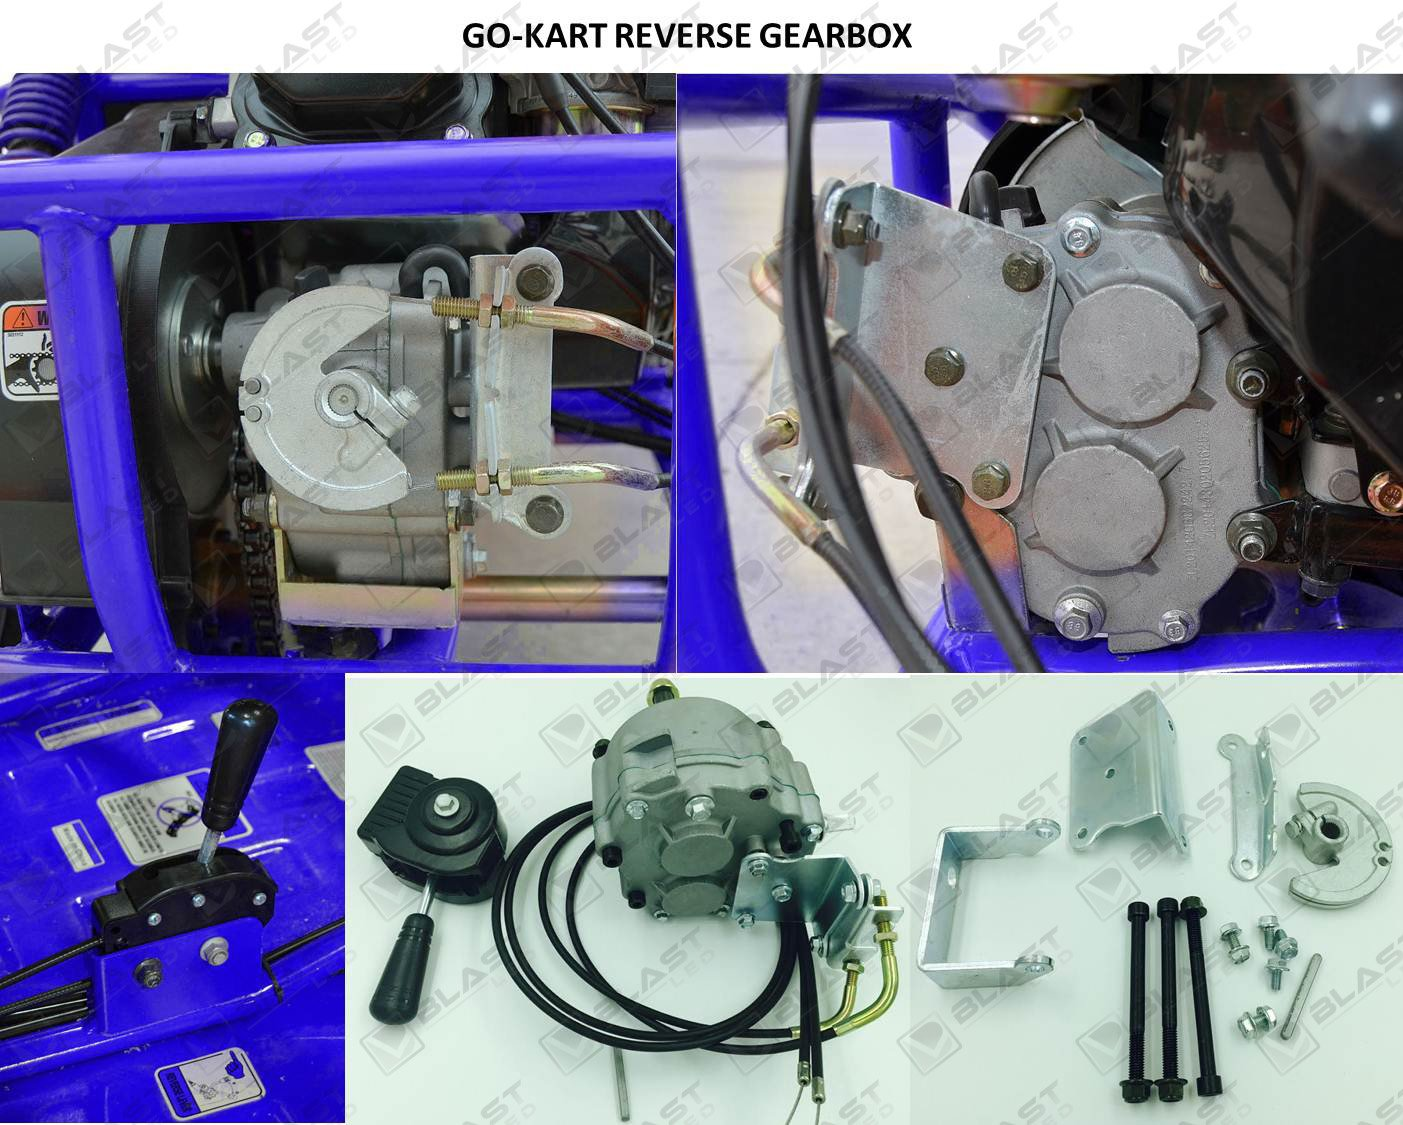 Amazon.com: BLAST Go Kart Forward Reverse Gear box Fits 2HP - 11HP Engine  41P 10T or 12T TAV30 - ONLY WORKS WITH 30 SERIES Torque Converter:  Automotive